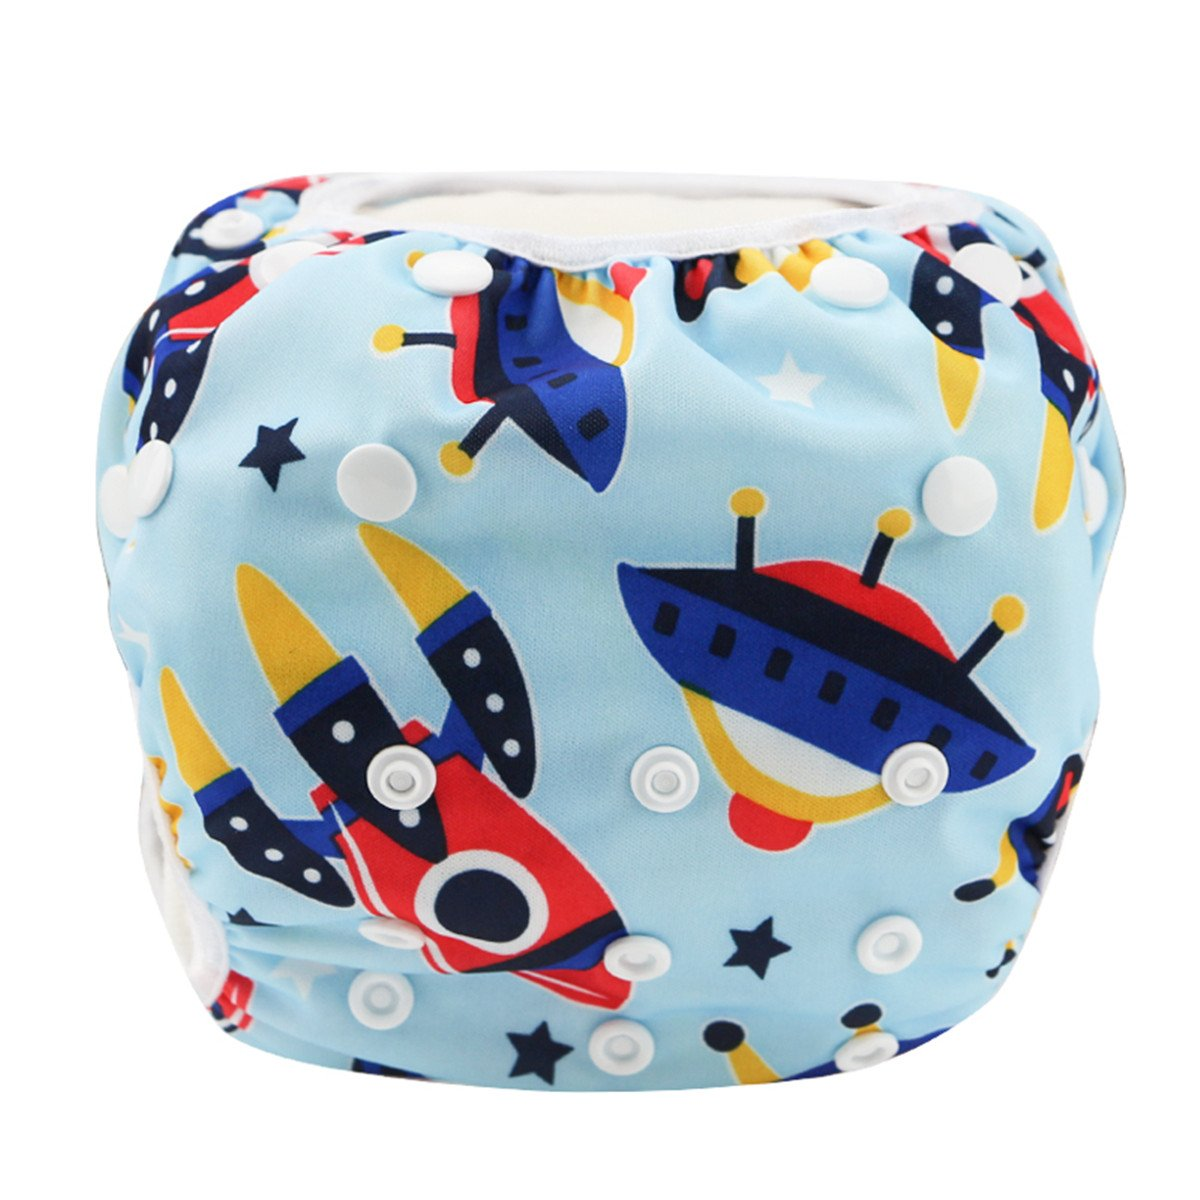 Frog Prince Hi Sprout Adjustable Snaps Baby Swim Diapers for Boys /& Girls